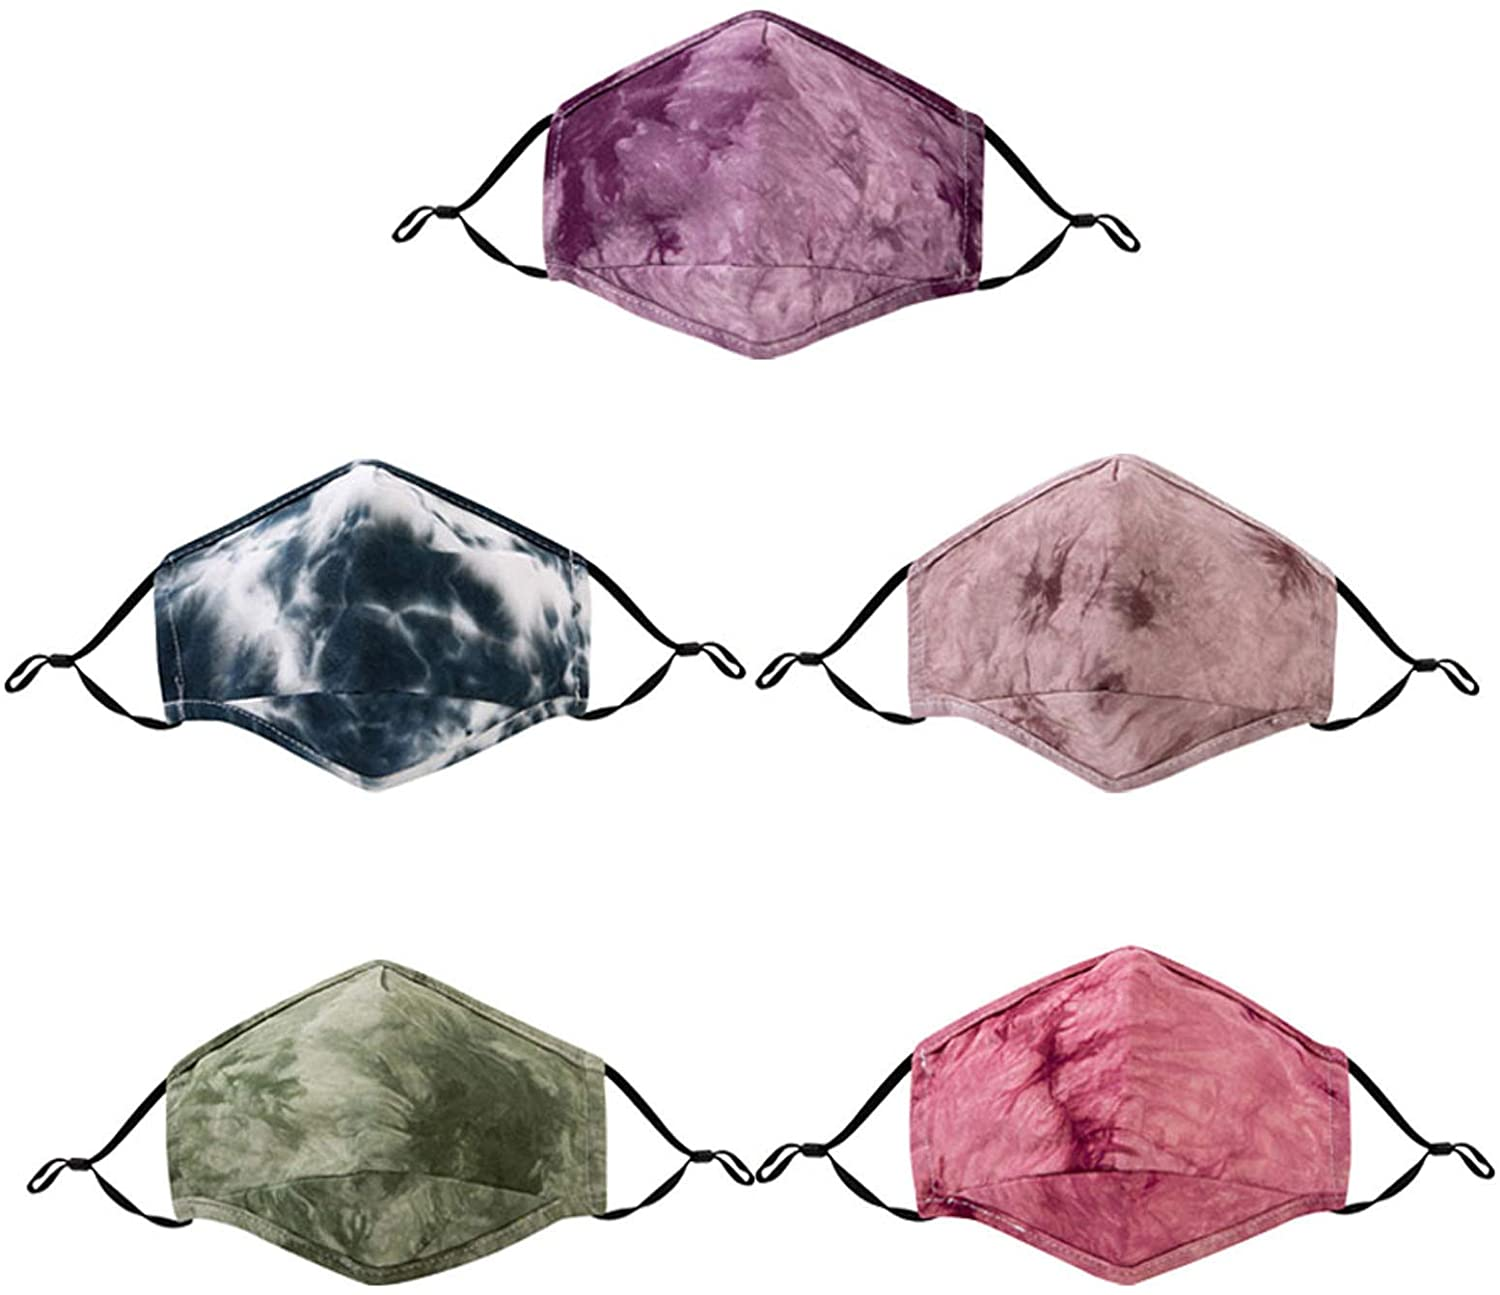 5pcs Beauty Tie Dye Fashion Adult Reuse Face_mask Face Coverings Reusable with Filter Pocket, Washable Cotton Cloth Dust Protective with Adjustable Ear Loops for Men Women Sports, Breathable